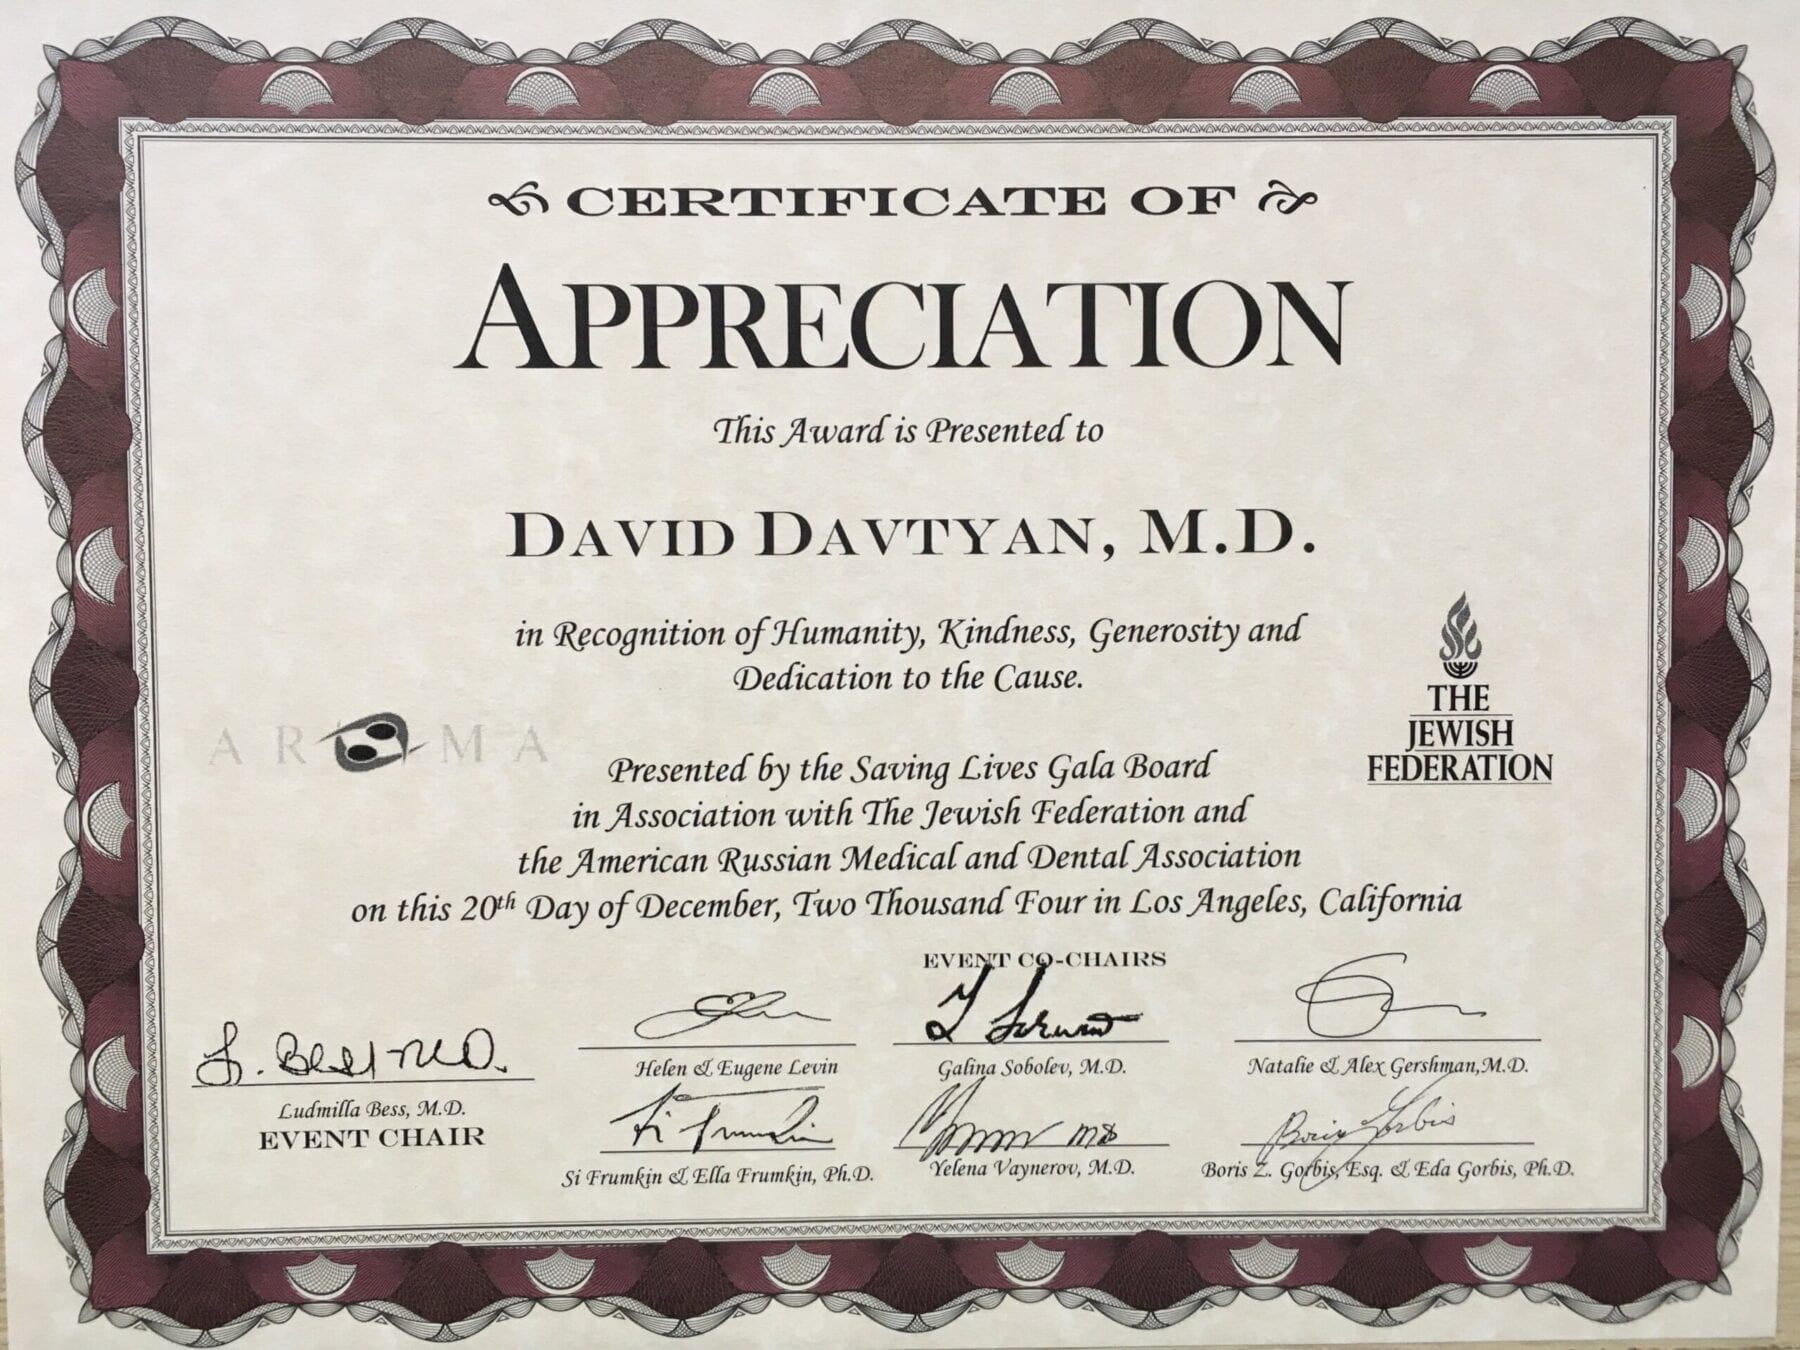 Certificate Of Appreciation For Dr. David G. Davtyan For Saving Lives Gala Board In Association With The Jewish Federation And The American Russian Medical Ad Dental Association